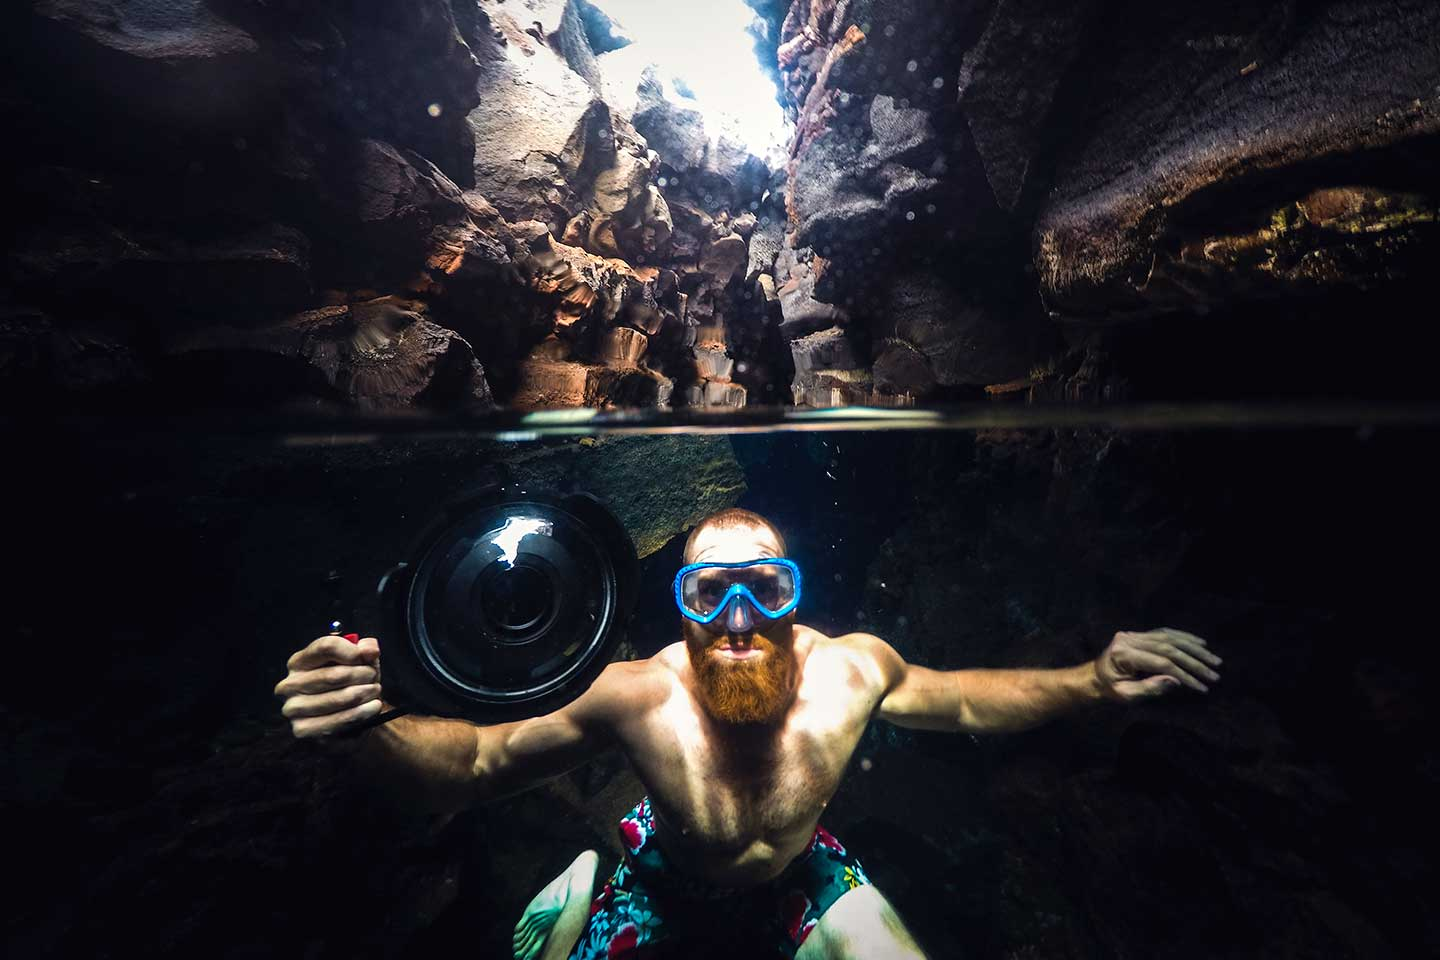 Gopro underwater photography tips: Get a GoPro Dome Port for over undershot